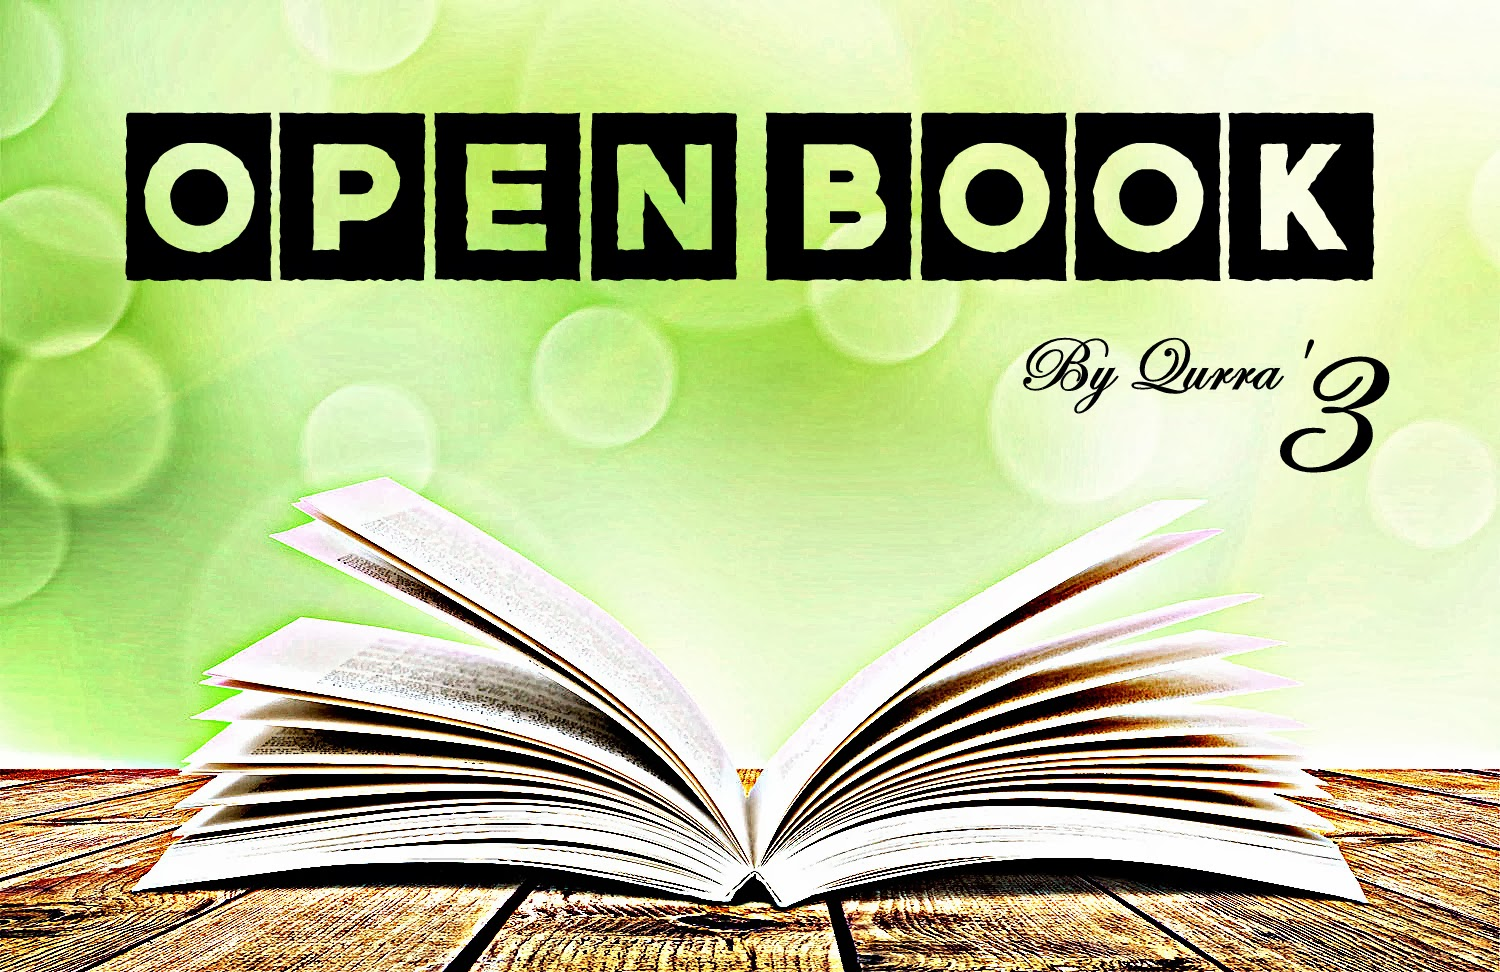 Open Book by Qurra' 3